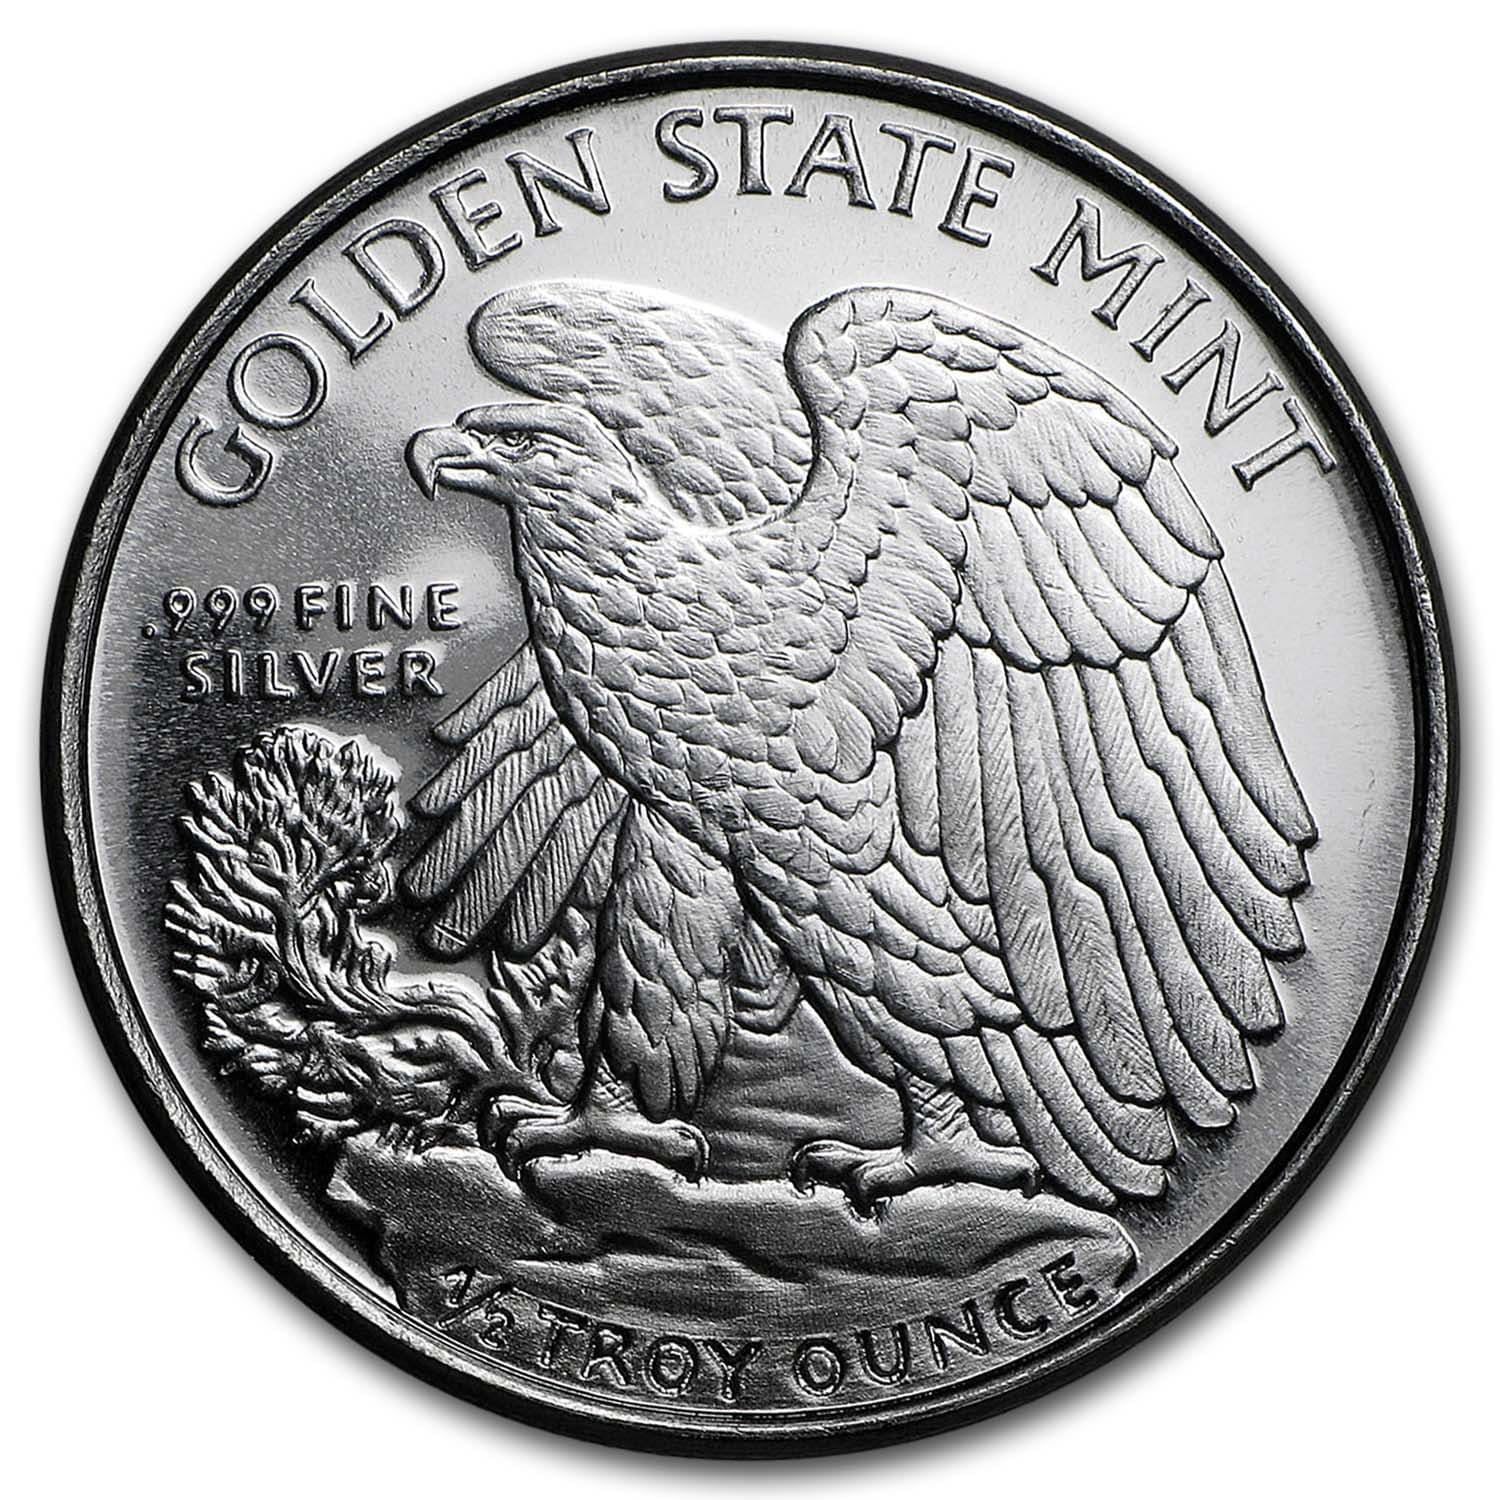 1/2 oz Silver Rounds - Walking Liberty